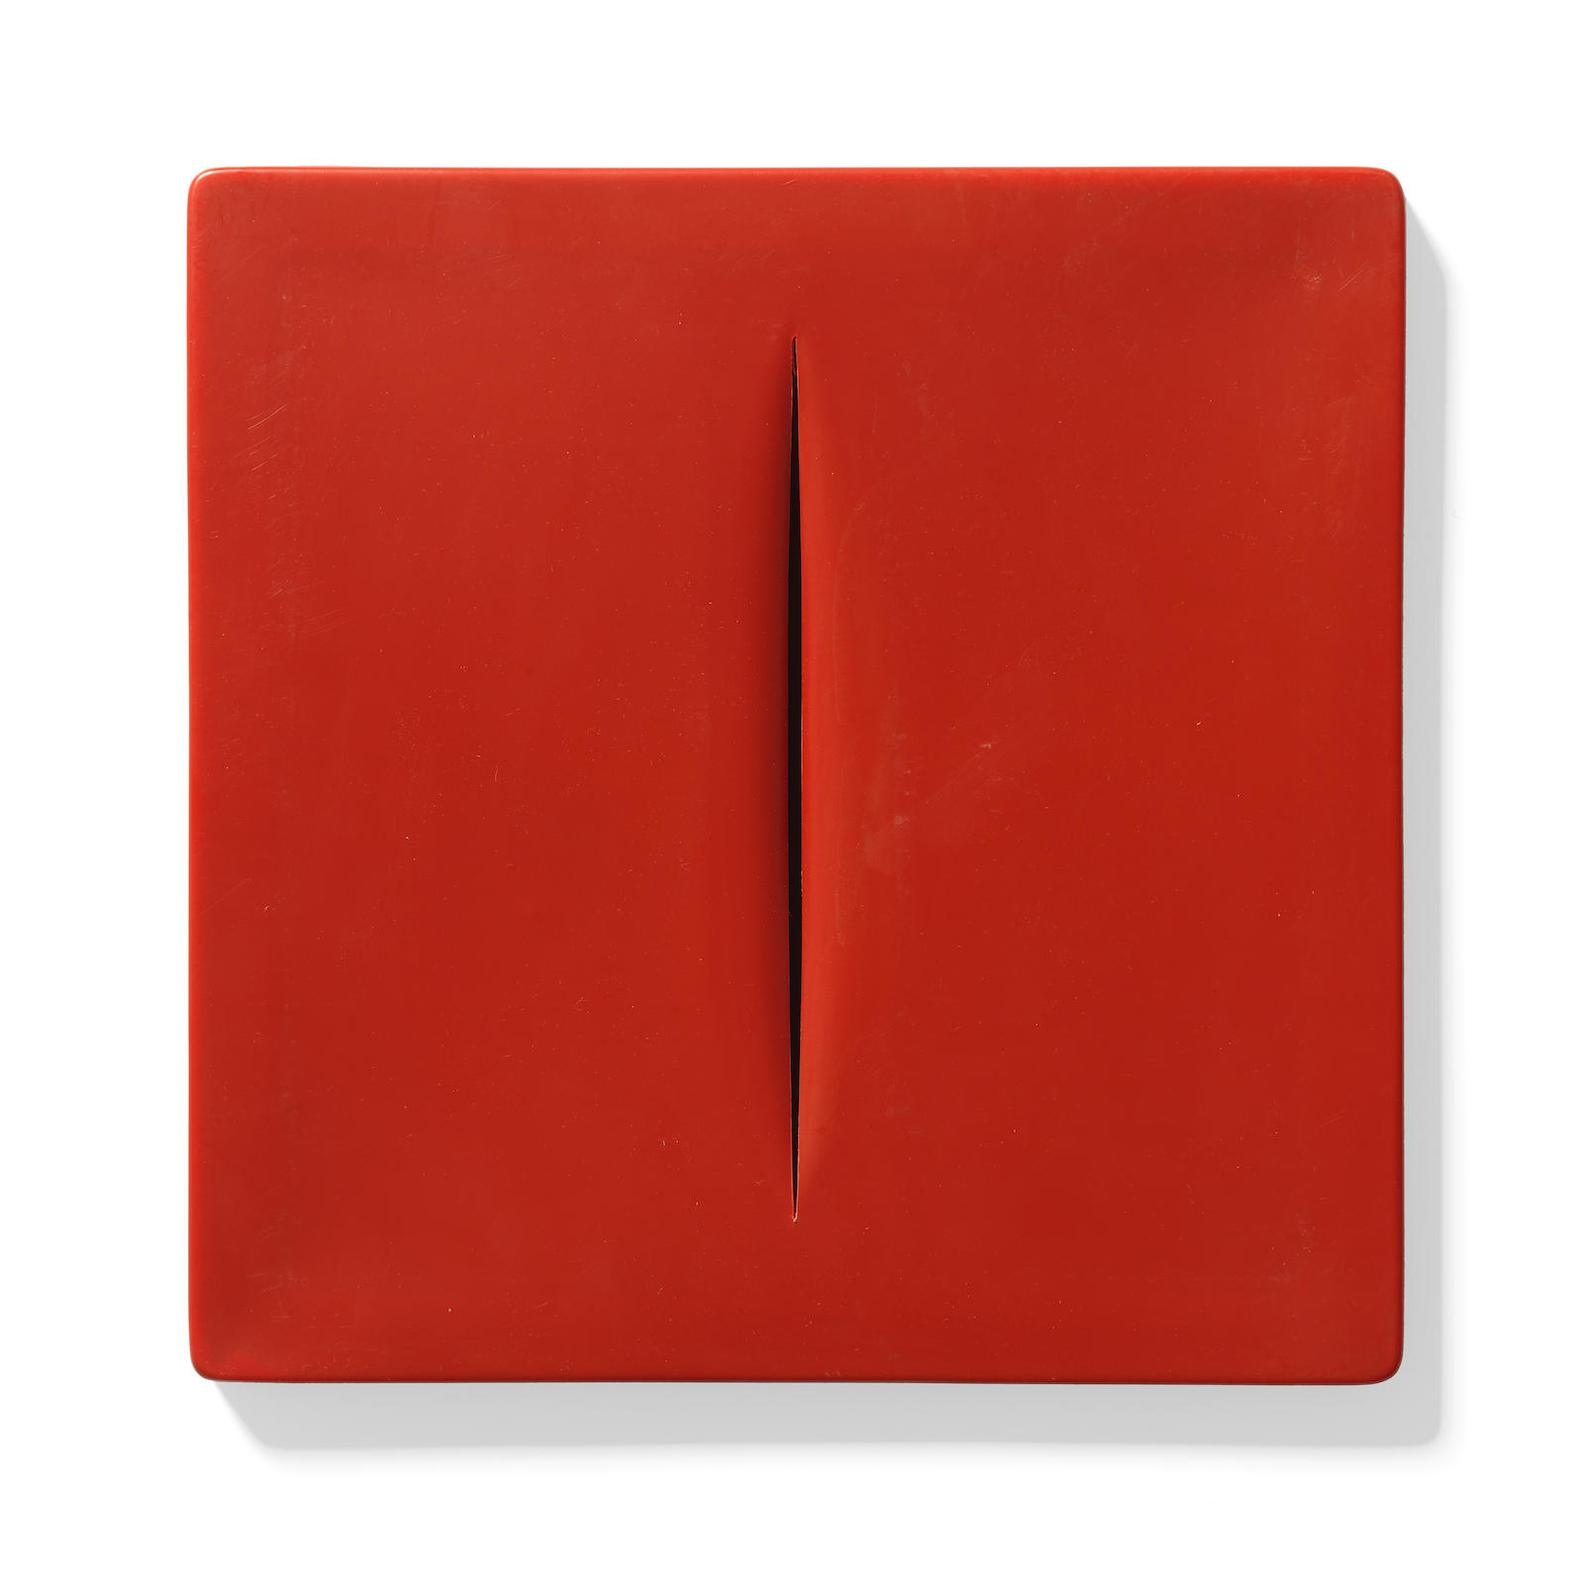 Lucio Fontana-After Lucio Fontana - Concetto Spaziale (Red) (Ruhe & Rigo M-15)-1968